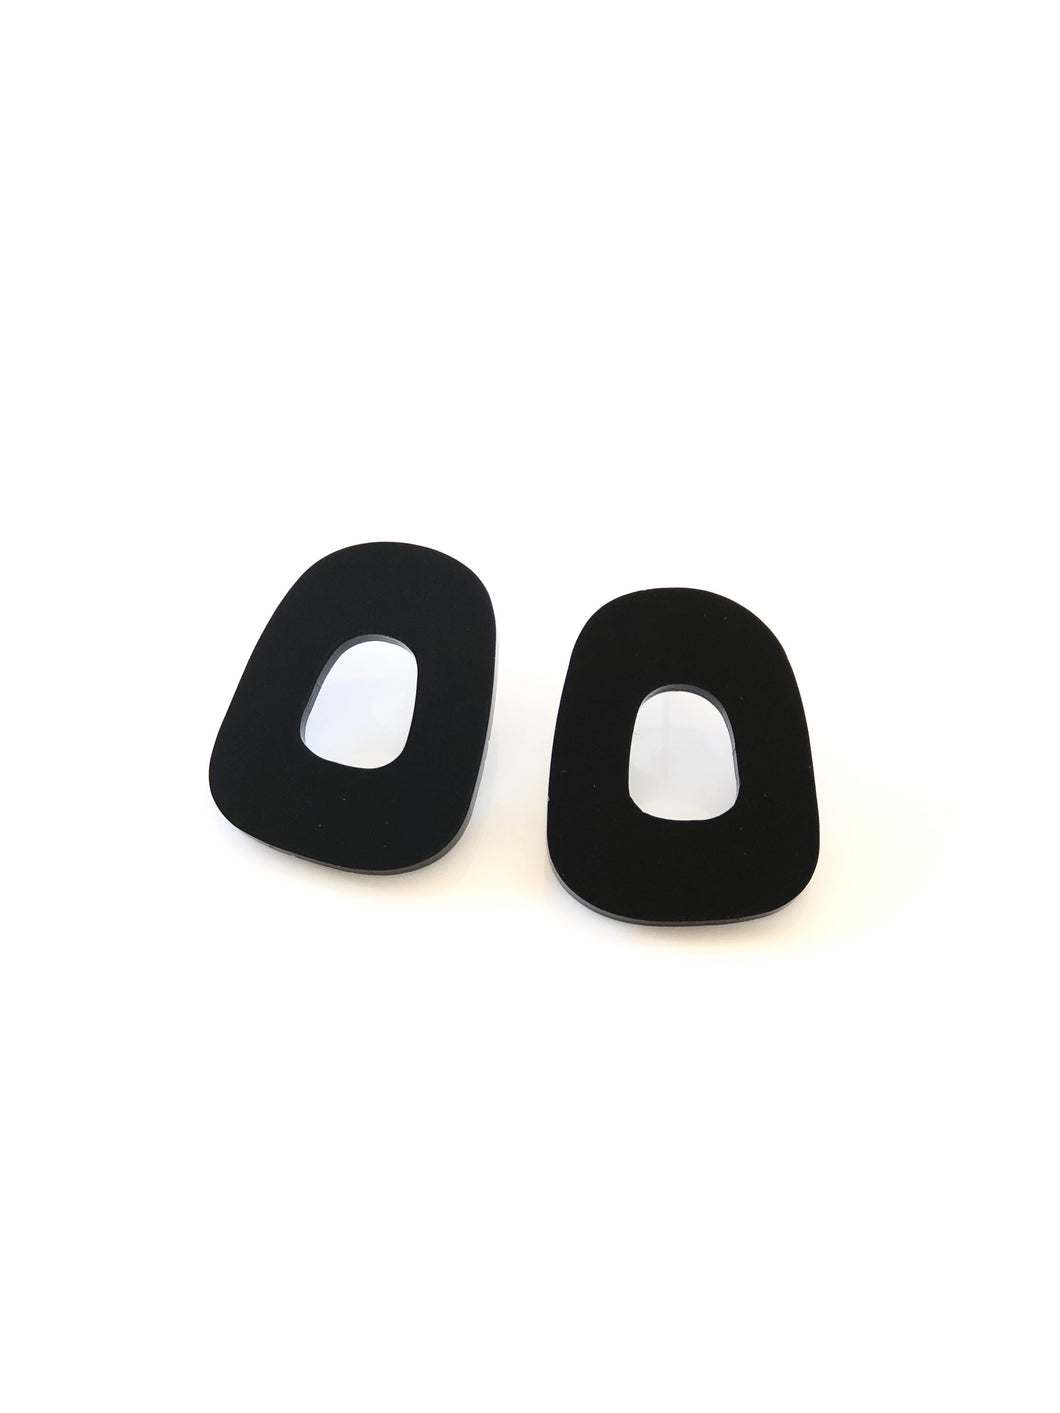 Organic Statement Studs Acrylic Earrings